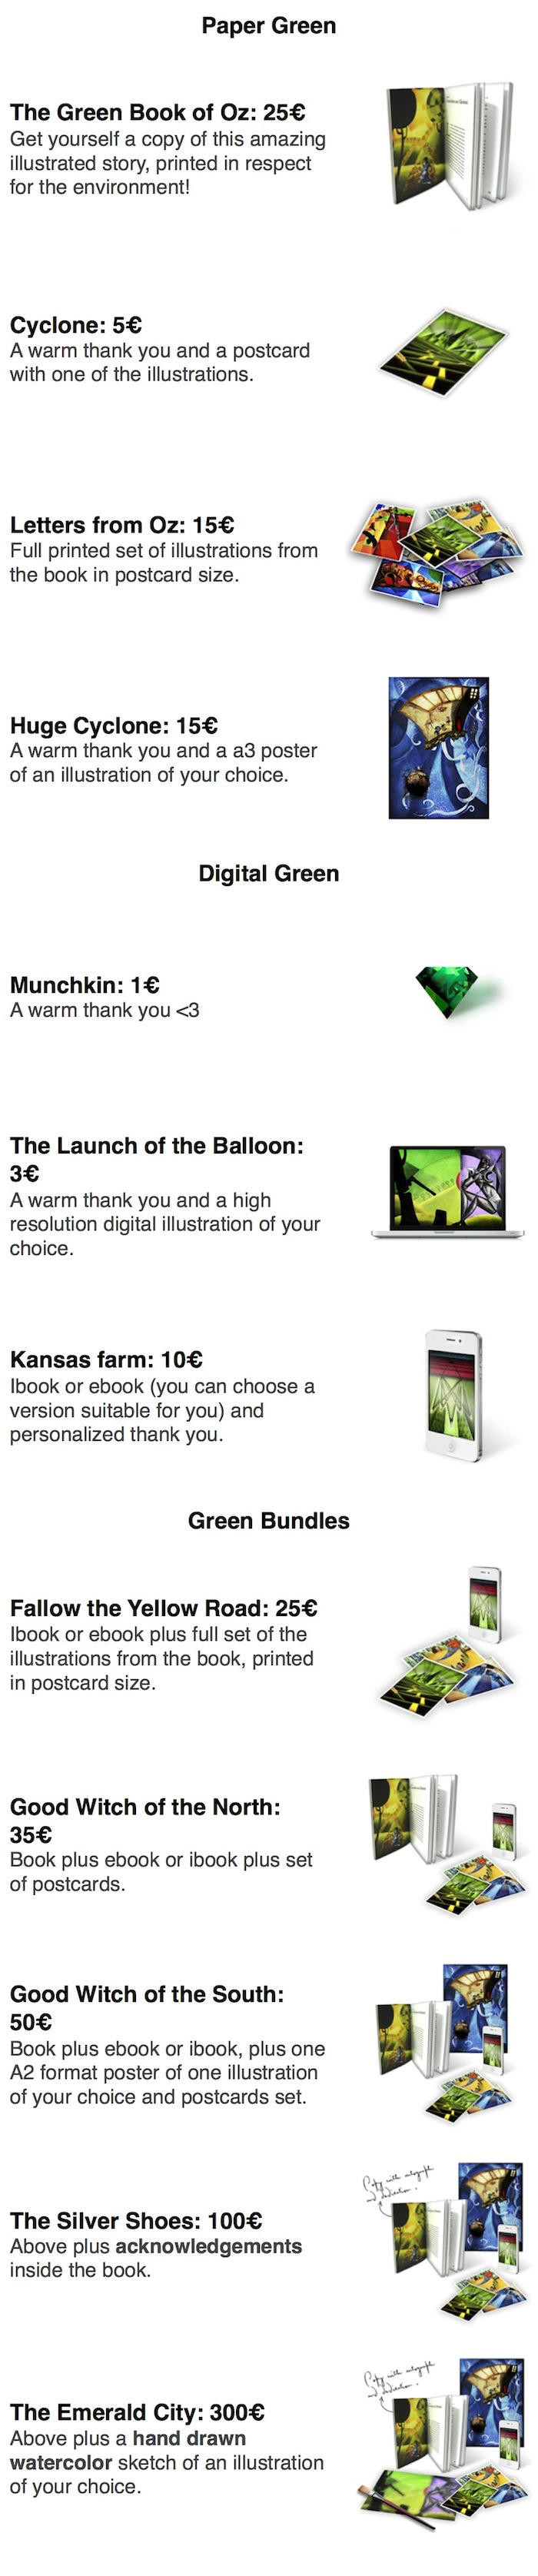 The Green Book Of Oz An Eco Friendly Illustrated Book Indiegogo